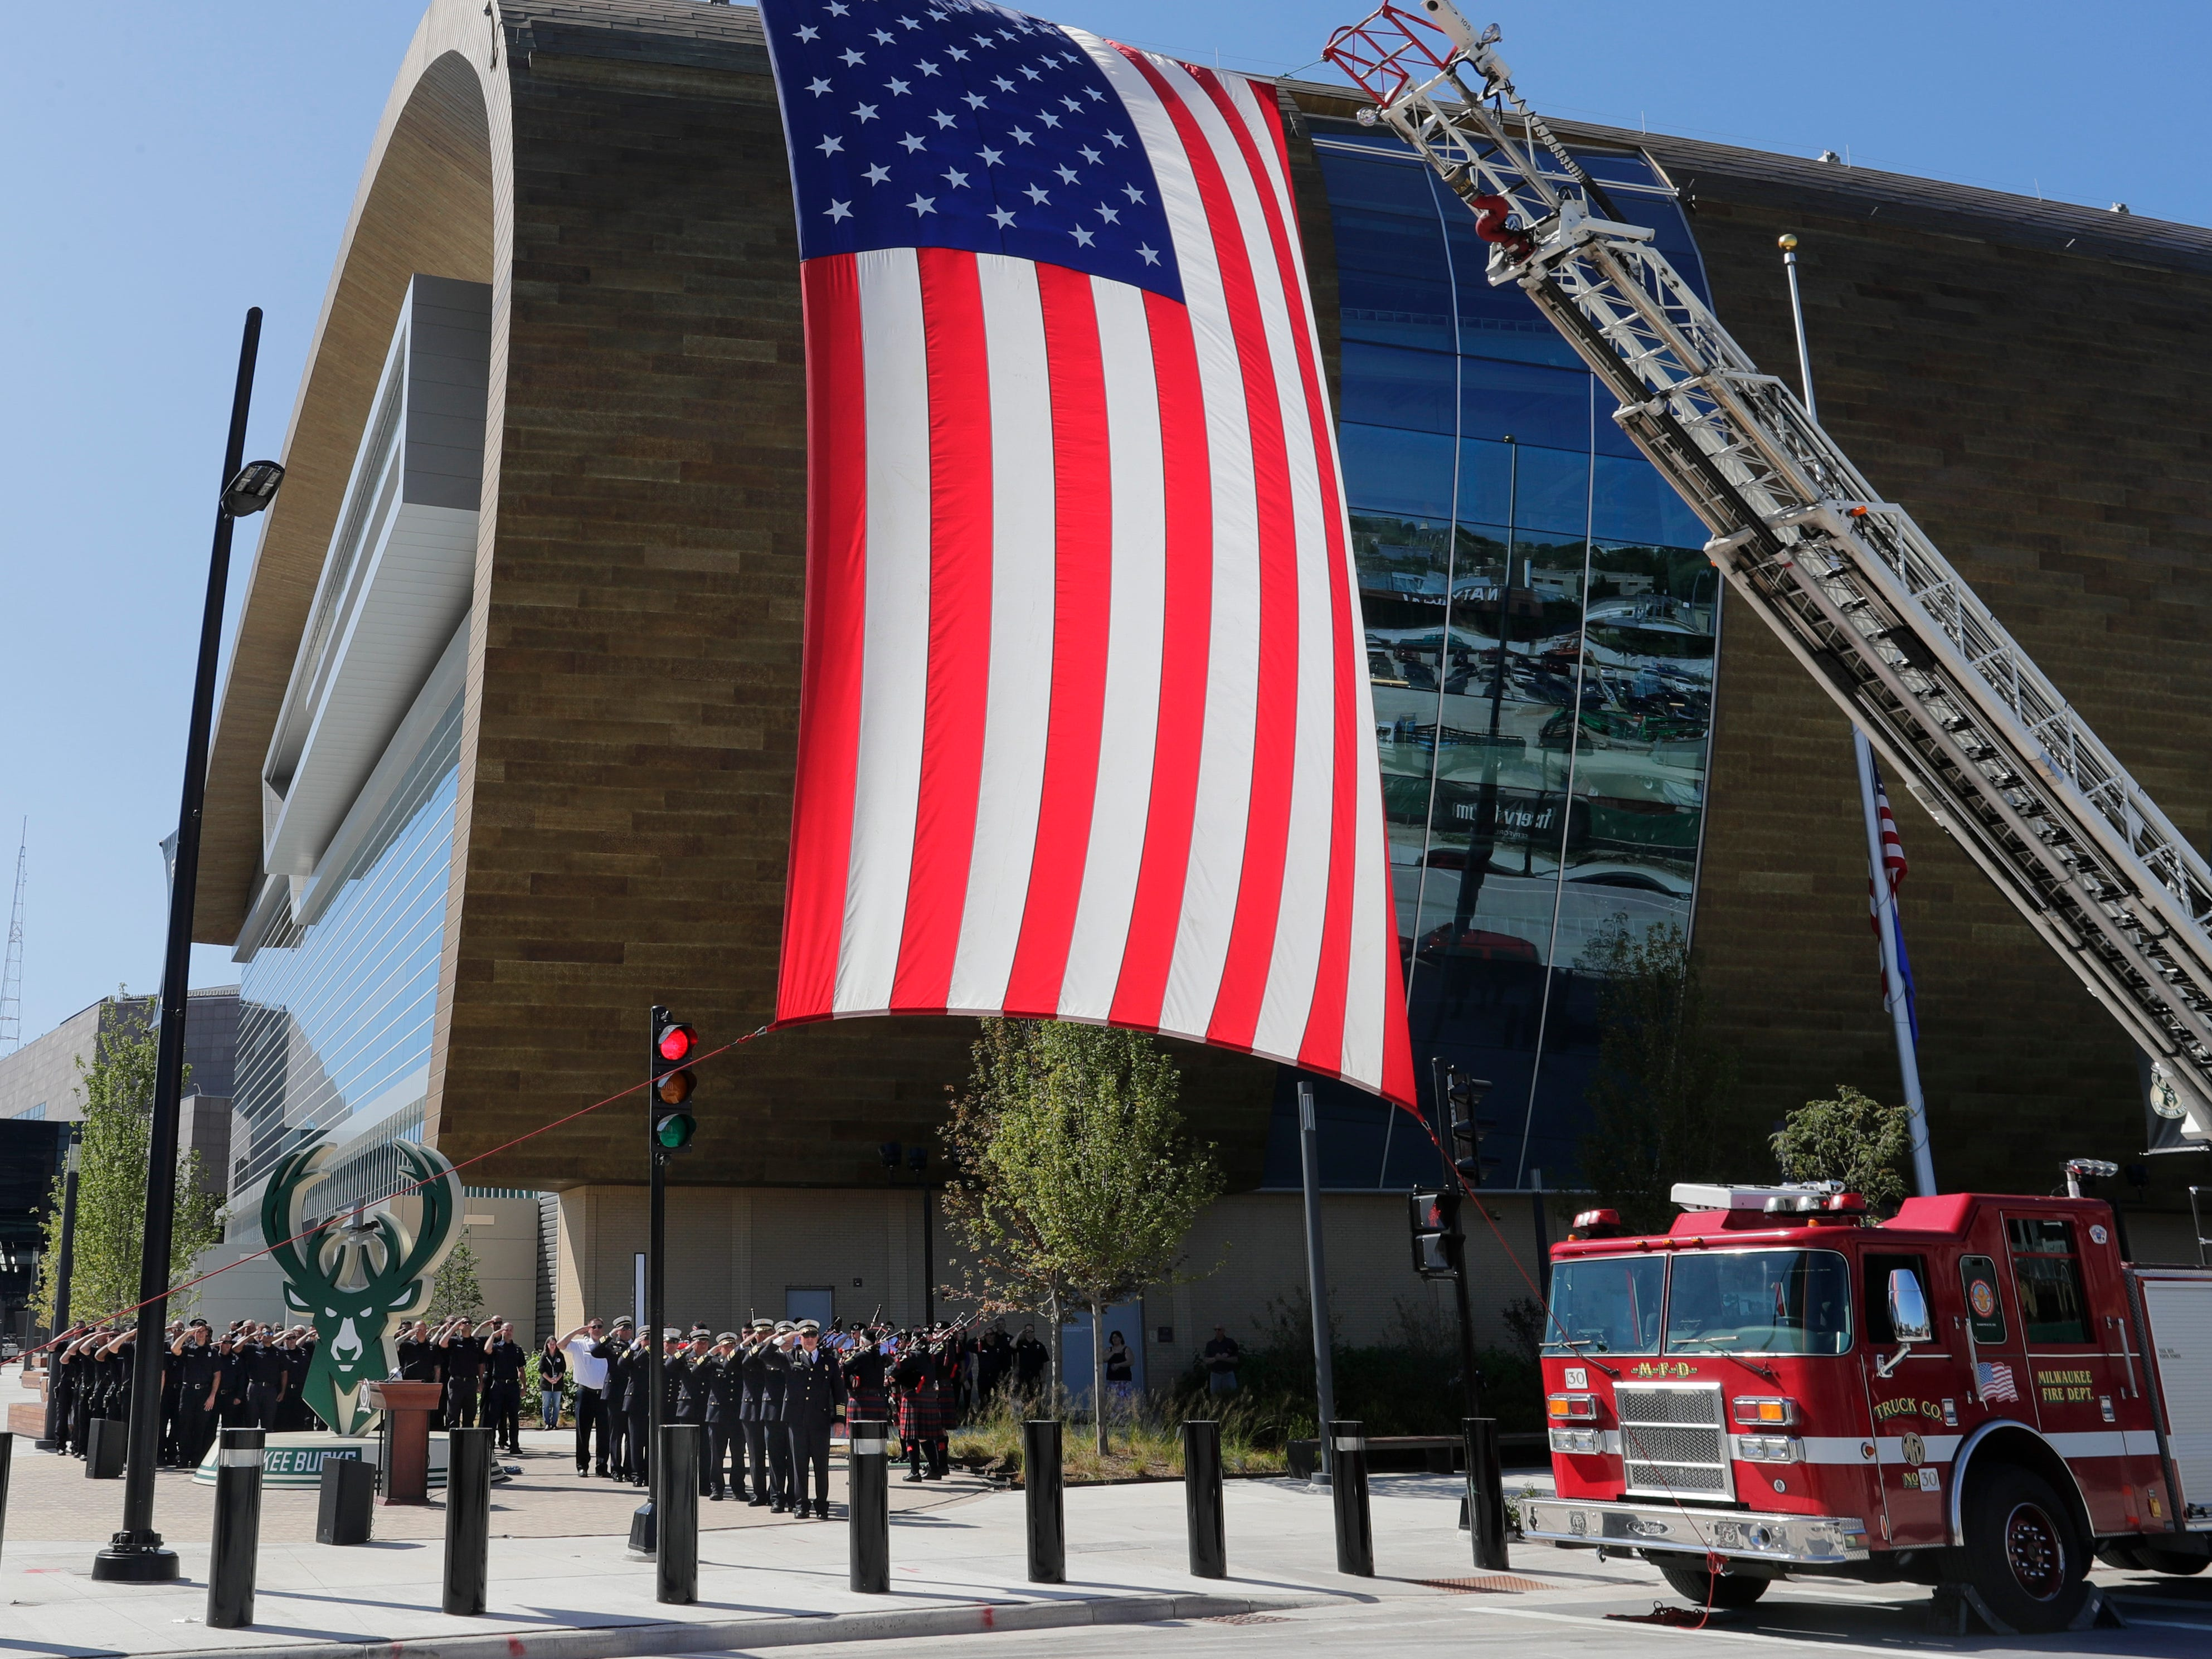 Two Milwaukee Fire Department ladder trucks display the American flag at the Fiserv Forum in an early morning commemoration for firefighters who lost their lives responding to the Sept. 11, 2001, attacks on the World Trade Center in New York.